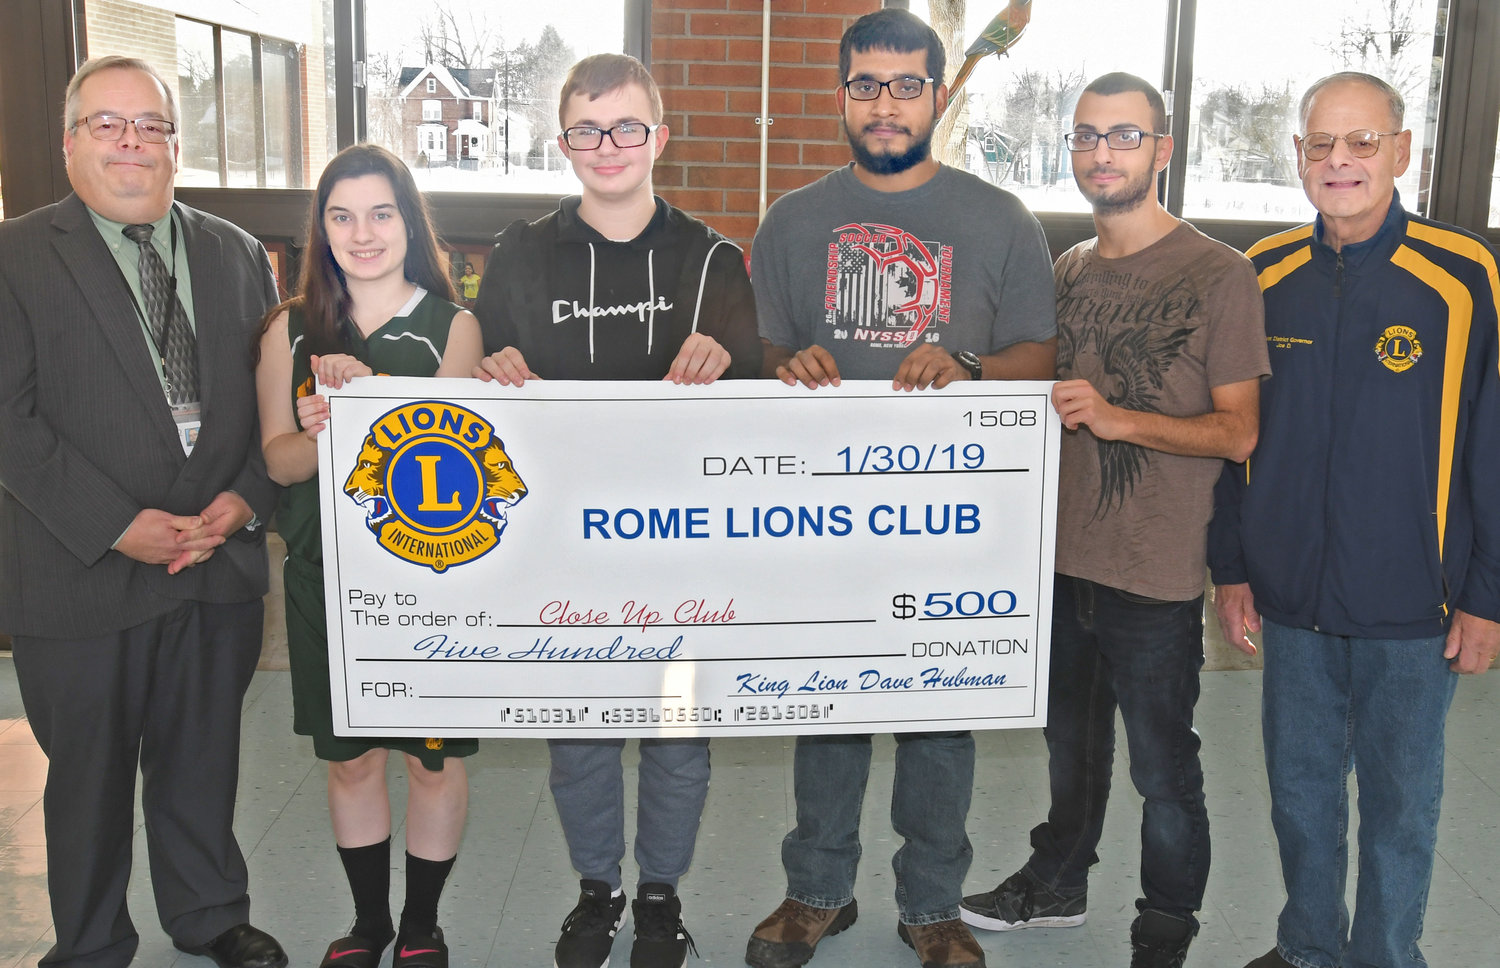 SUPPORT FOR JOURNEY — The Rome Lions Club presents students at the New York State School for the Deaf, 401 Turin St., with a donation of $500 to help support an educational trip by students to Washington, D.C.  From left: NYSSD Superintendent David Hubman; students Abigail Anzalone, of Unadilla; Arif Cajic, of Utica; Ka Dil, of Utica; Yousef Sawaqed, of  Poughkeepsie; and Joe DeFina, of the Rome Lions Club.